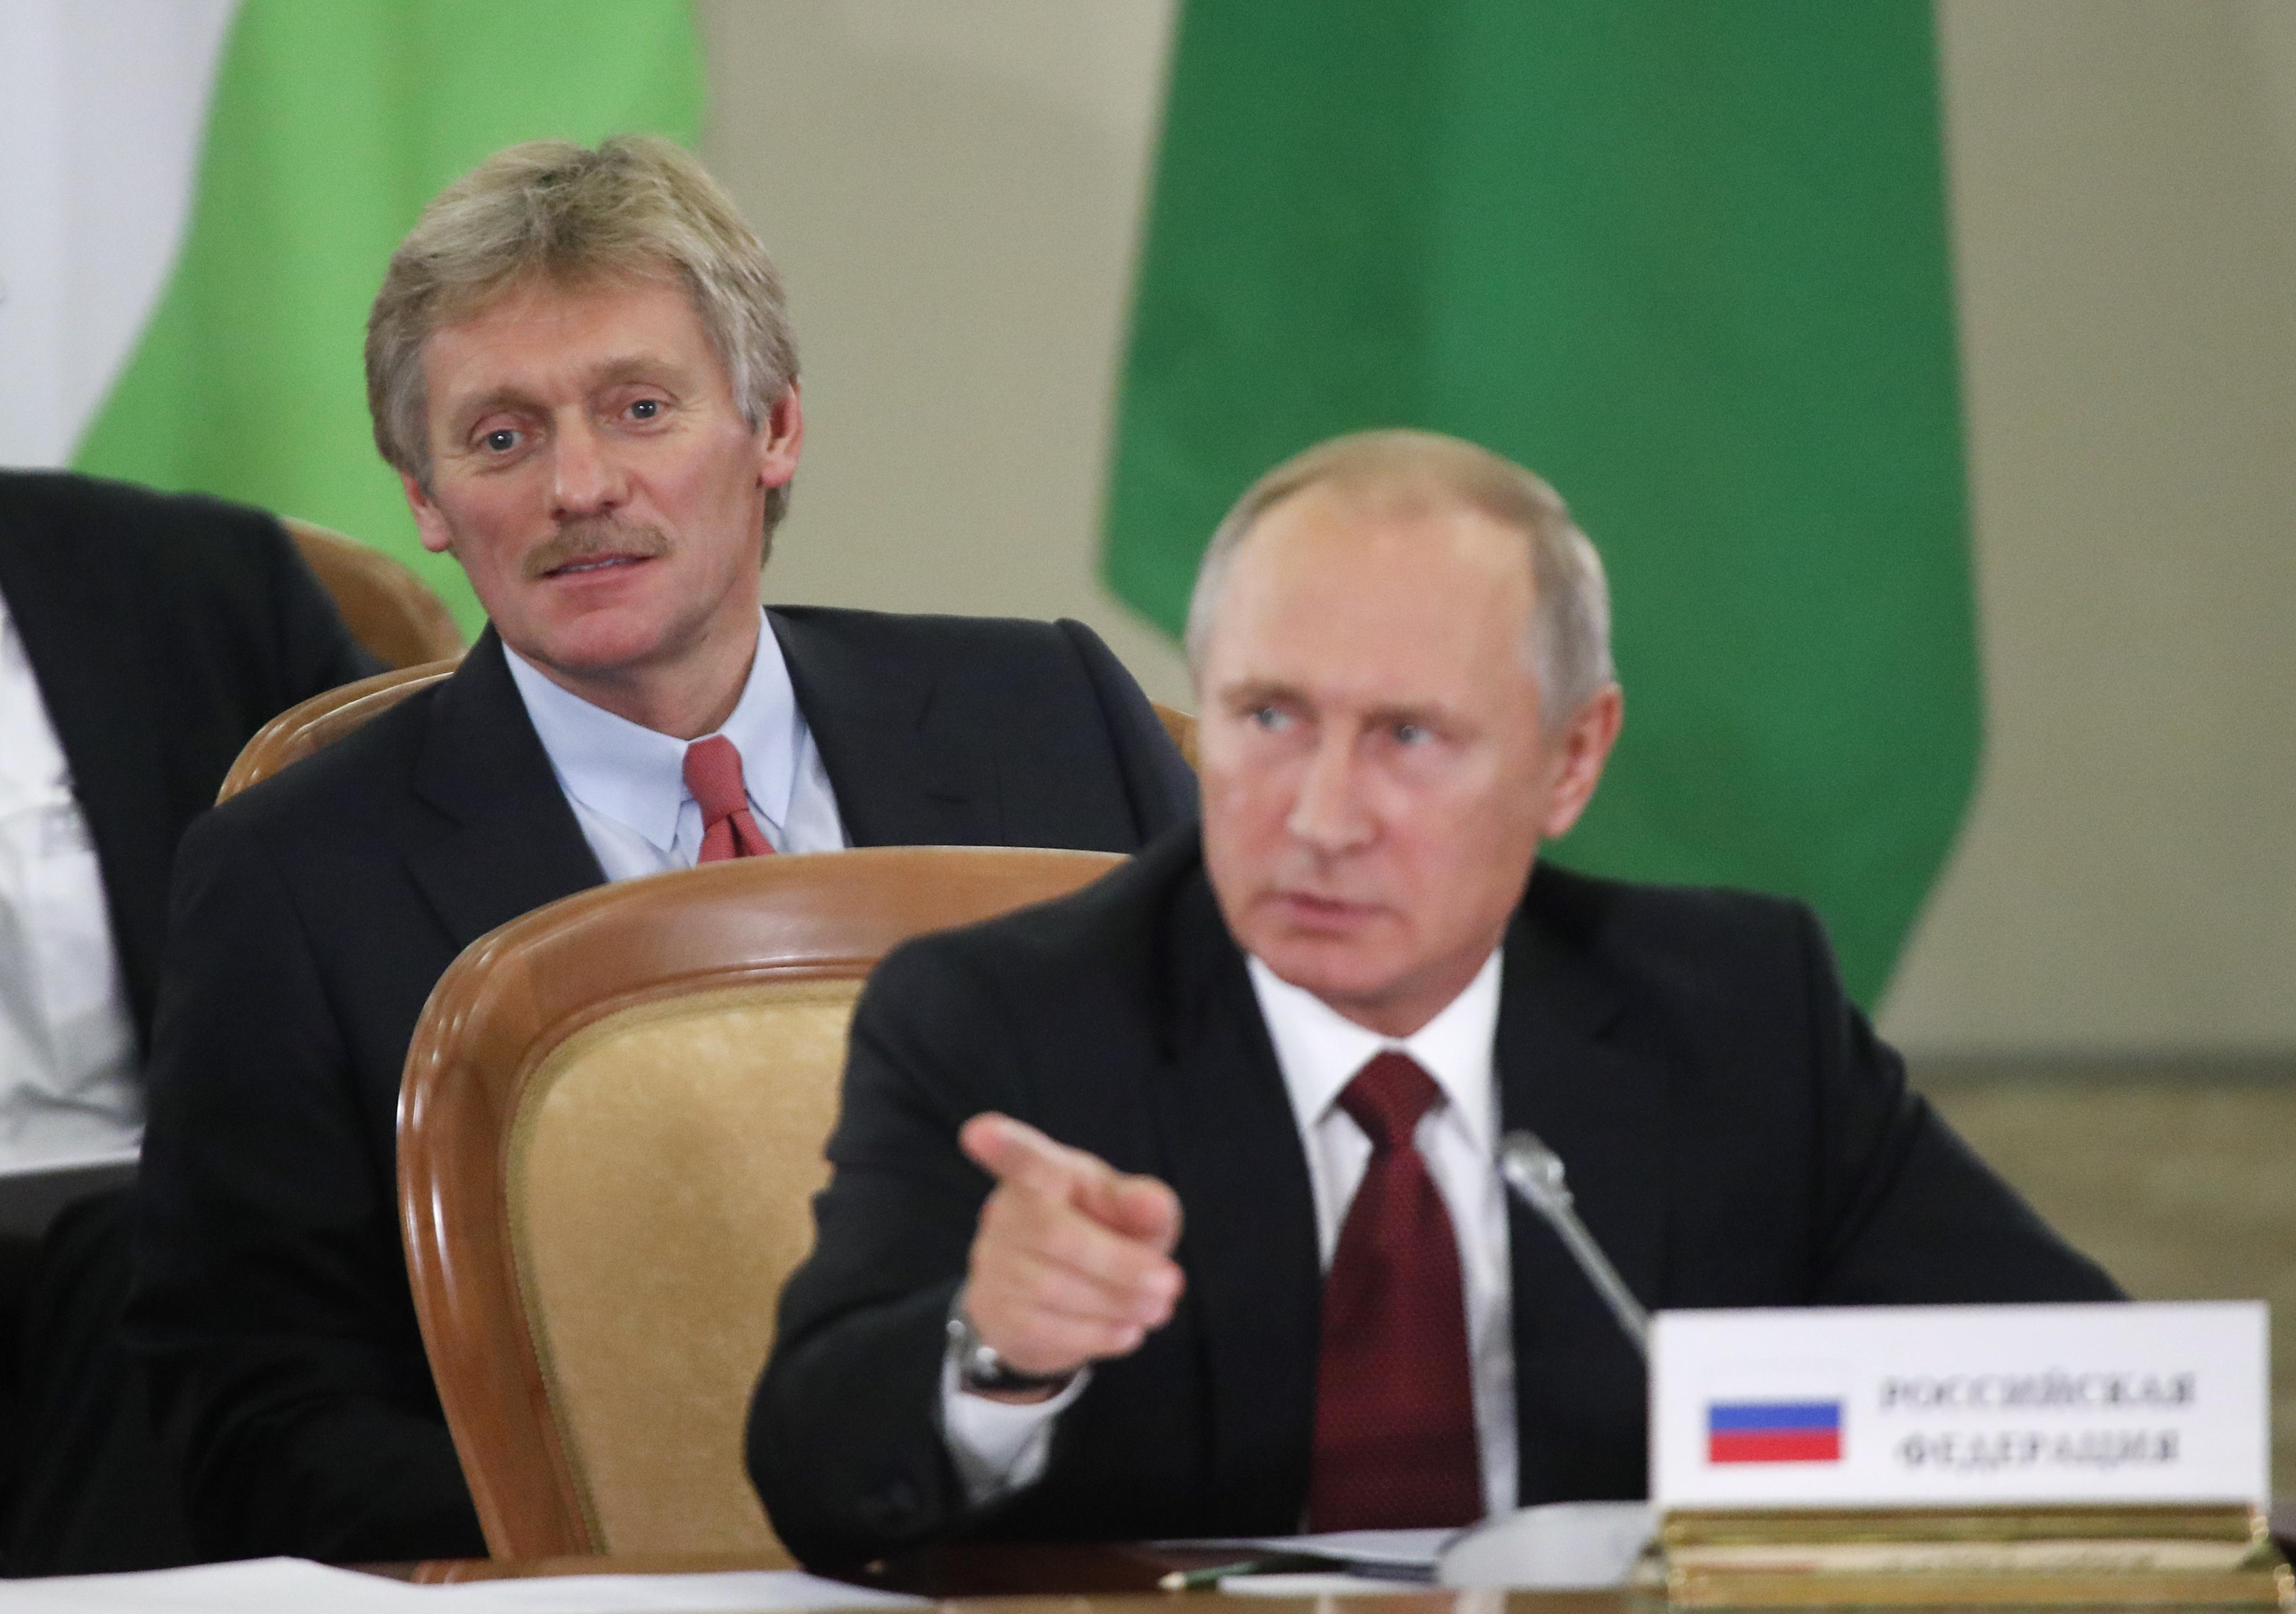 Putin and Peskov [19659014] Russian President Vladimir Putin (front) and Kremlin spokesman Dmitry Peskov attend a meeting of the Council of Heads of State of the Commonwealth of Independent States (CIS) in Sochi, Russia, on 11 October 2017. </span> <span class=